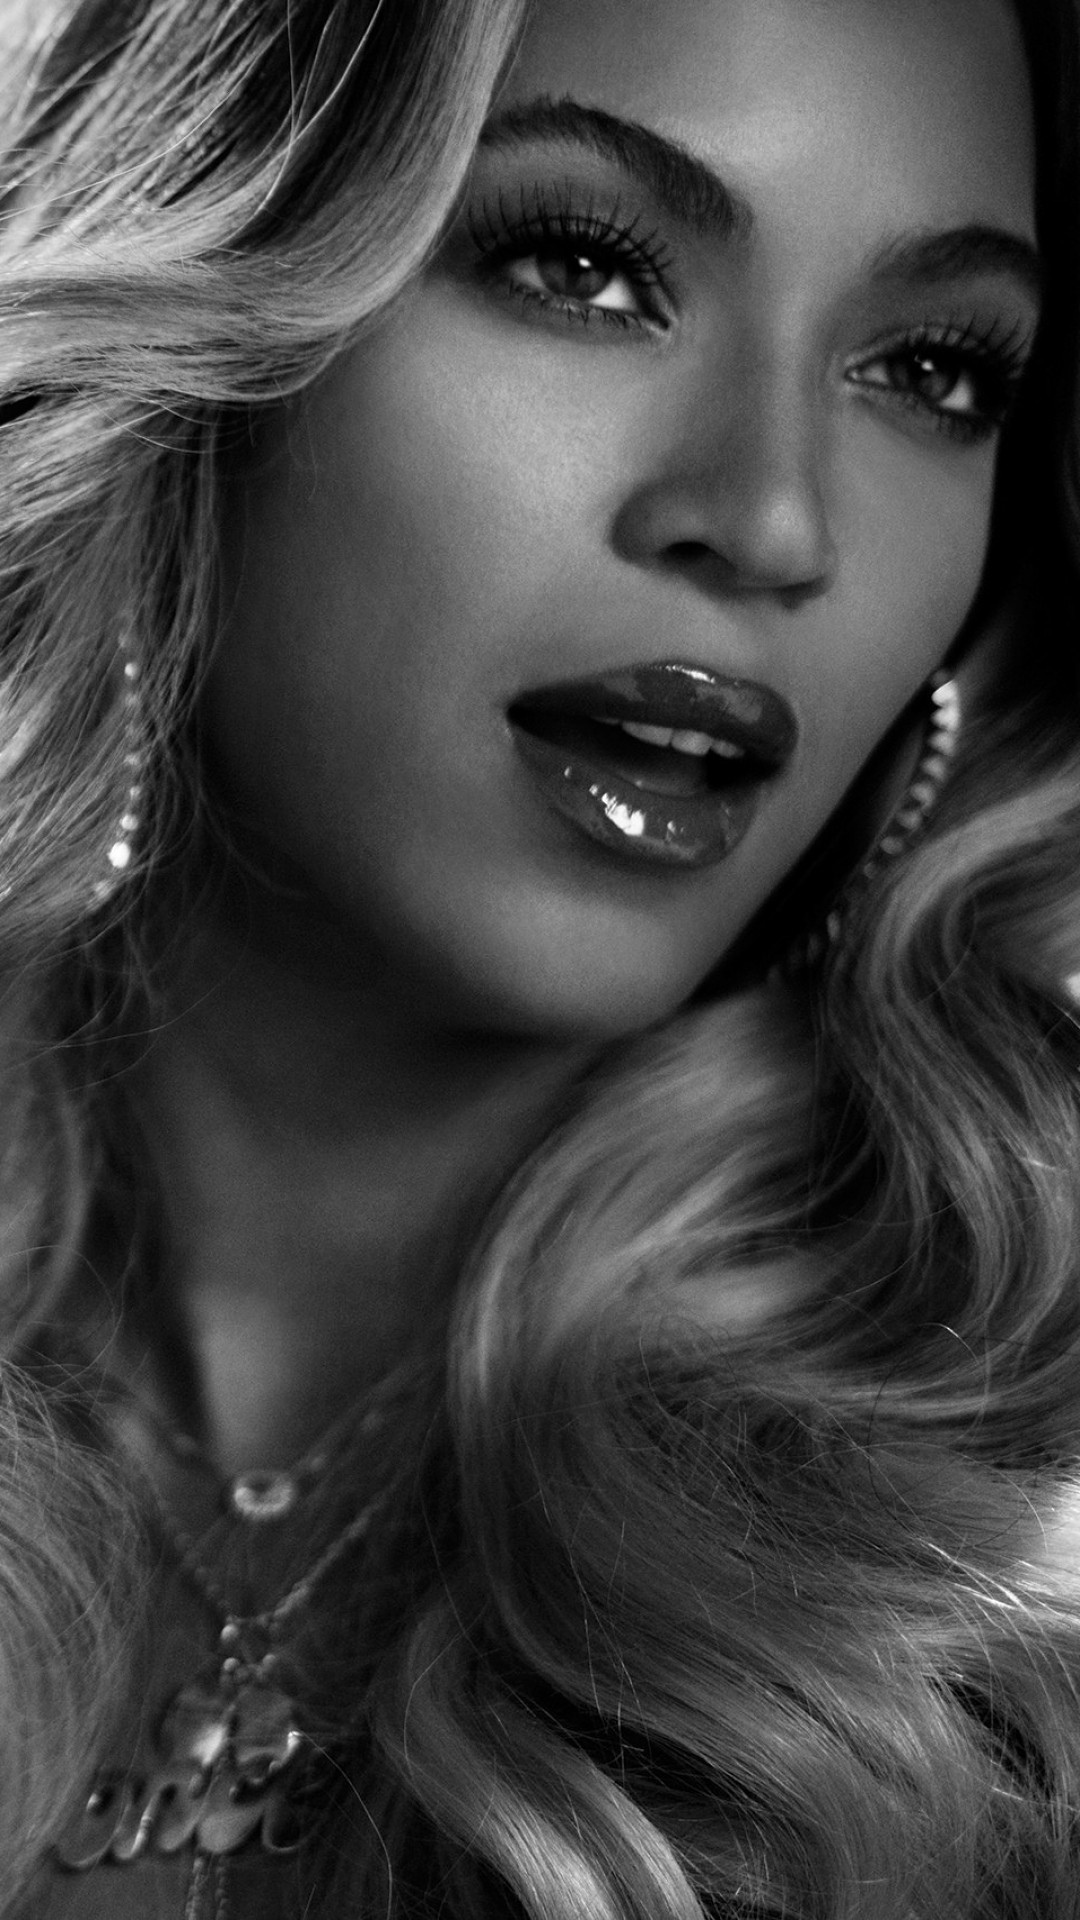 Beyonce phone background